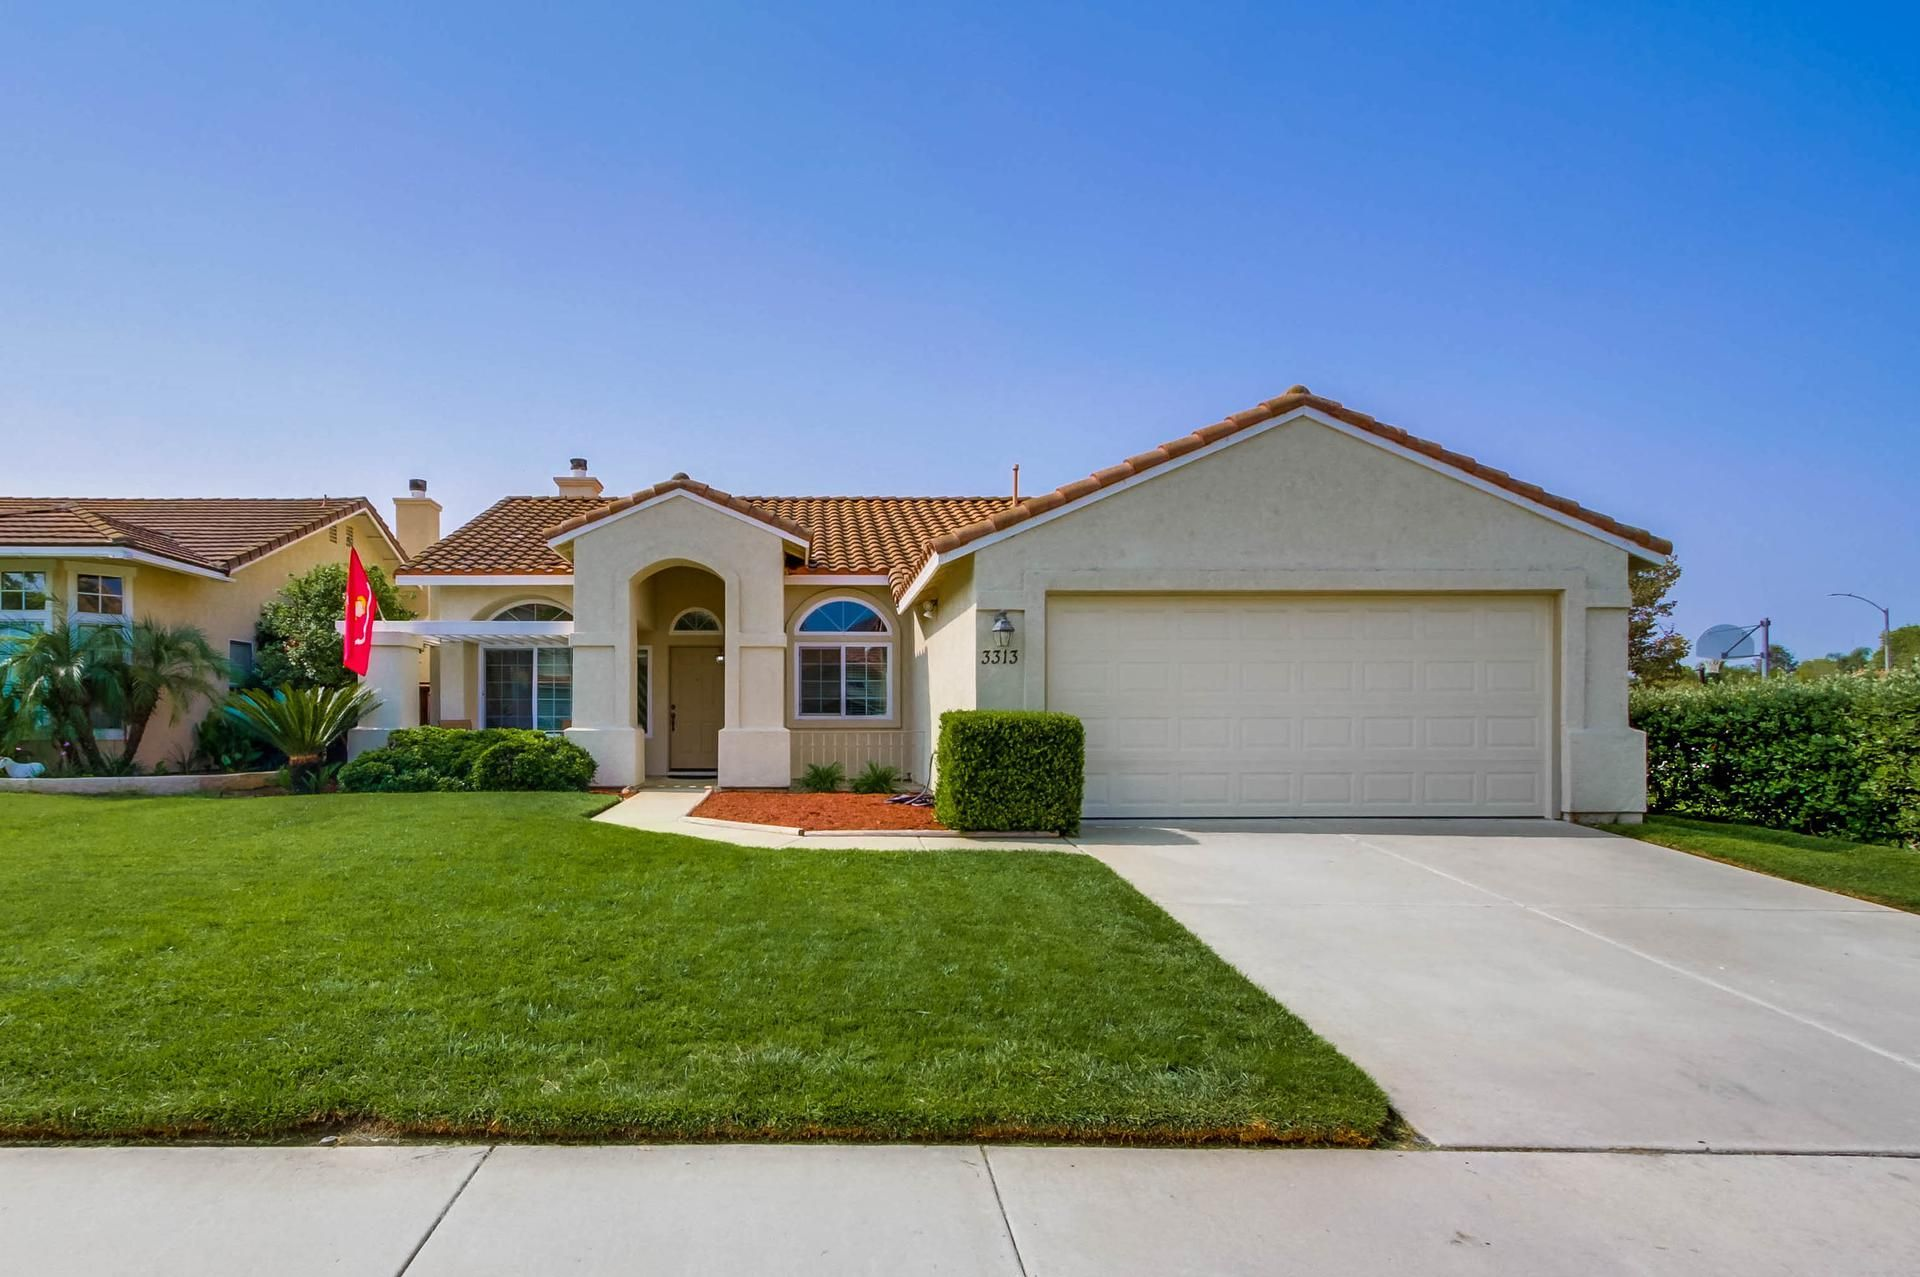 New listing in Fallbrook